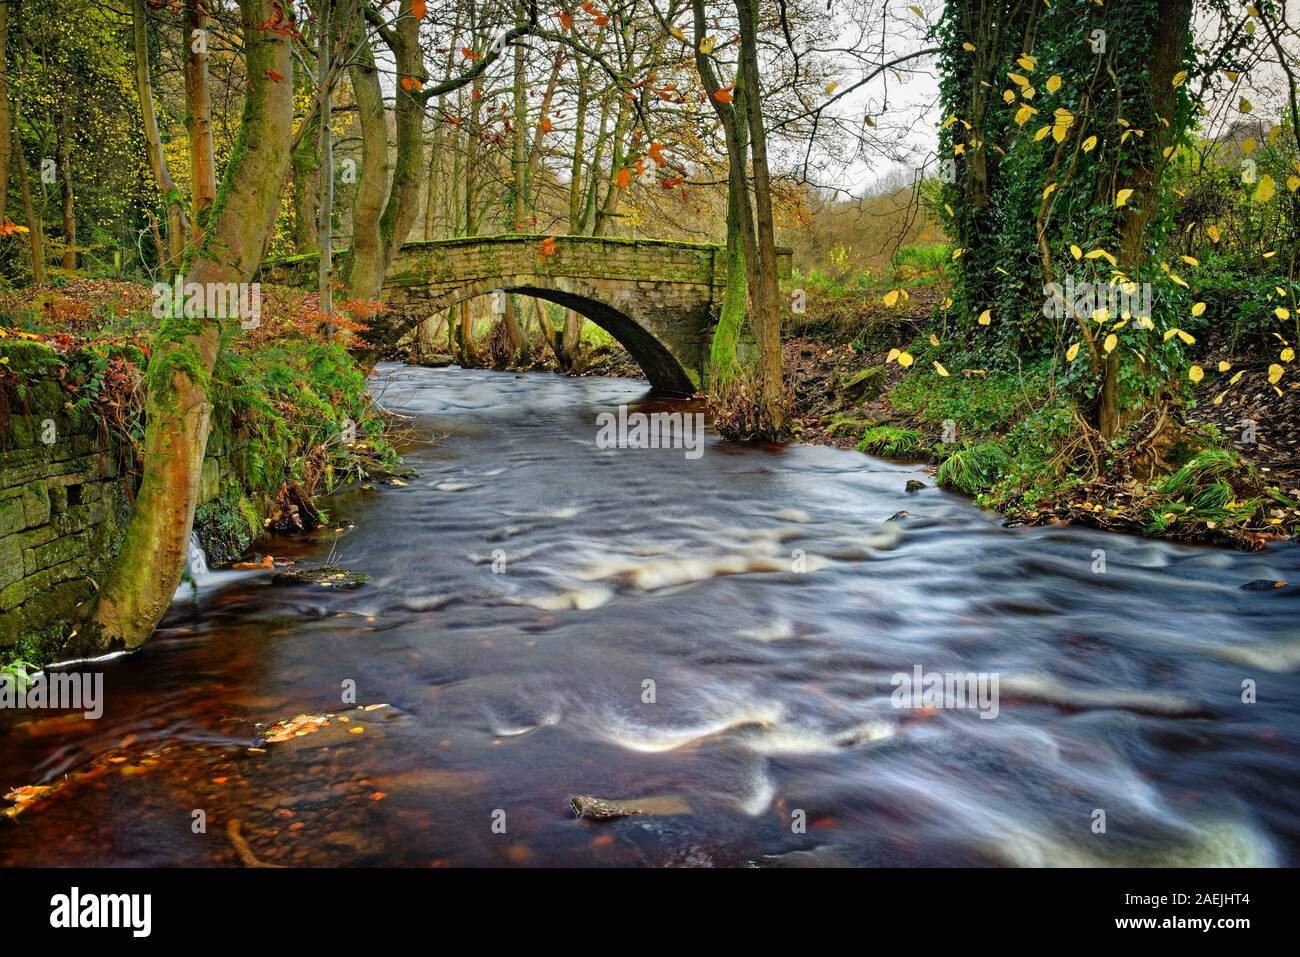 Reino Unido,South Yorkshire,Sheffield,Río Rivelin & Roscoe Puente en otoño Foto de stock